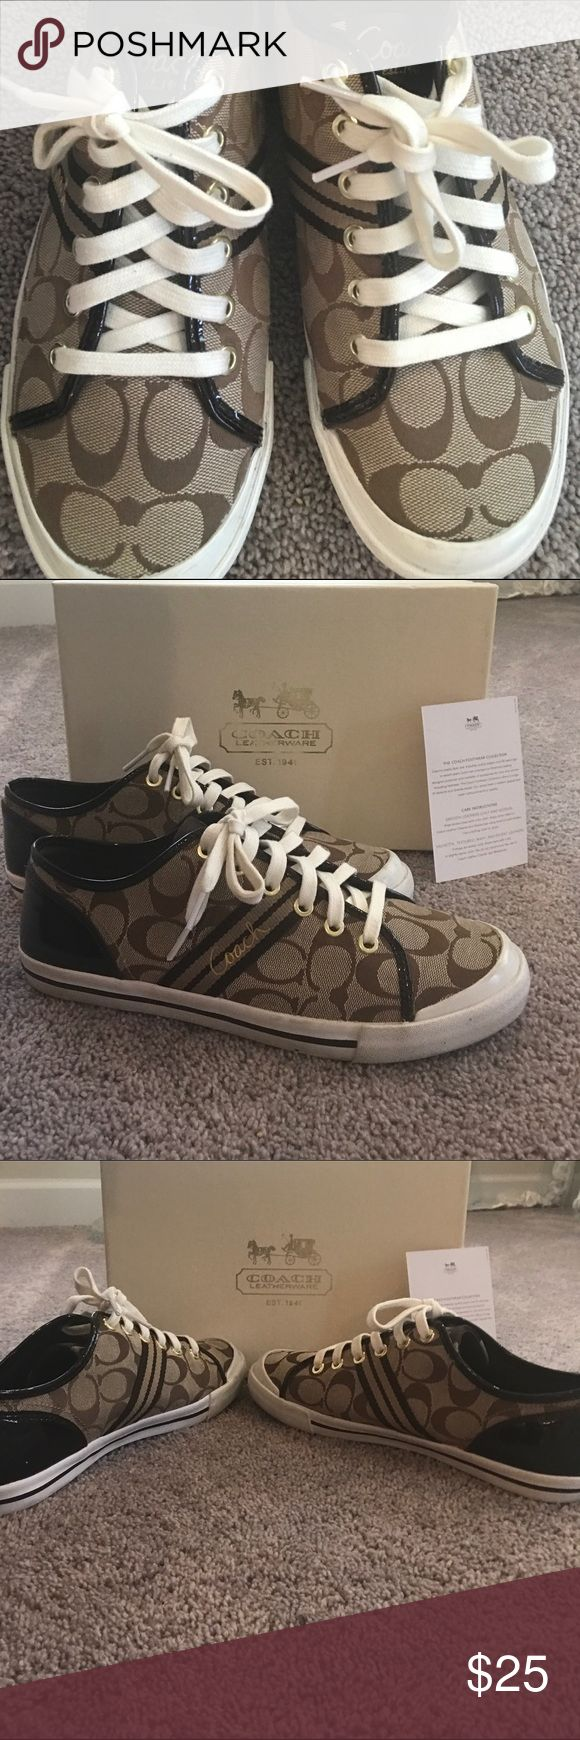 Coach sneakers Great authentic coach sneakers size 9.5 in great condition as you can see in pics only worn a few times very comfortable little to no ware great pair of shoes Coach Shoes Sneakers